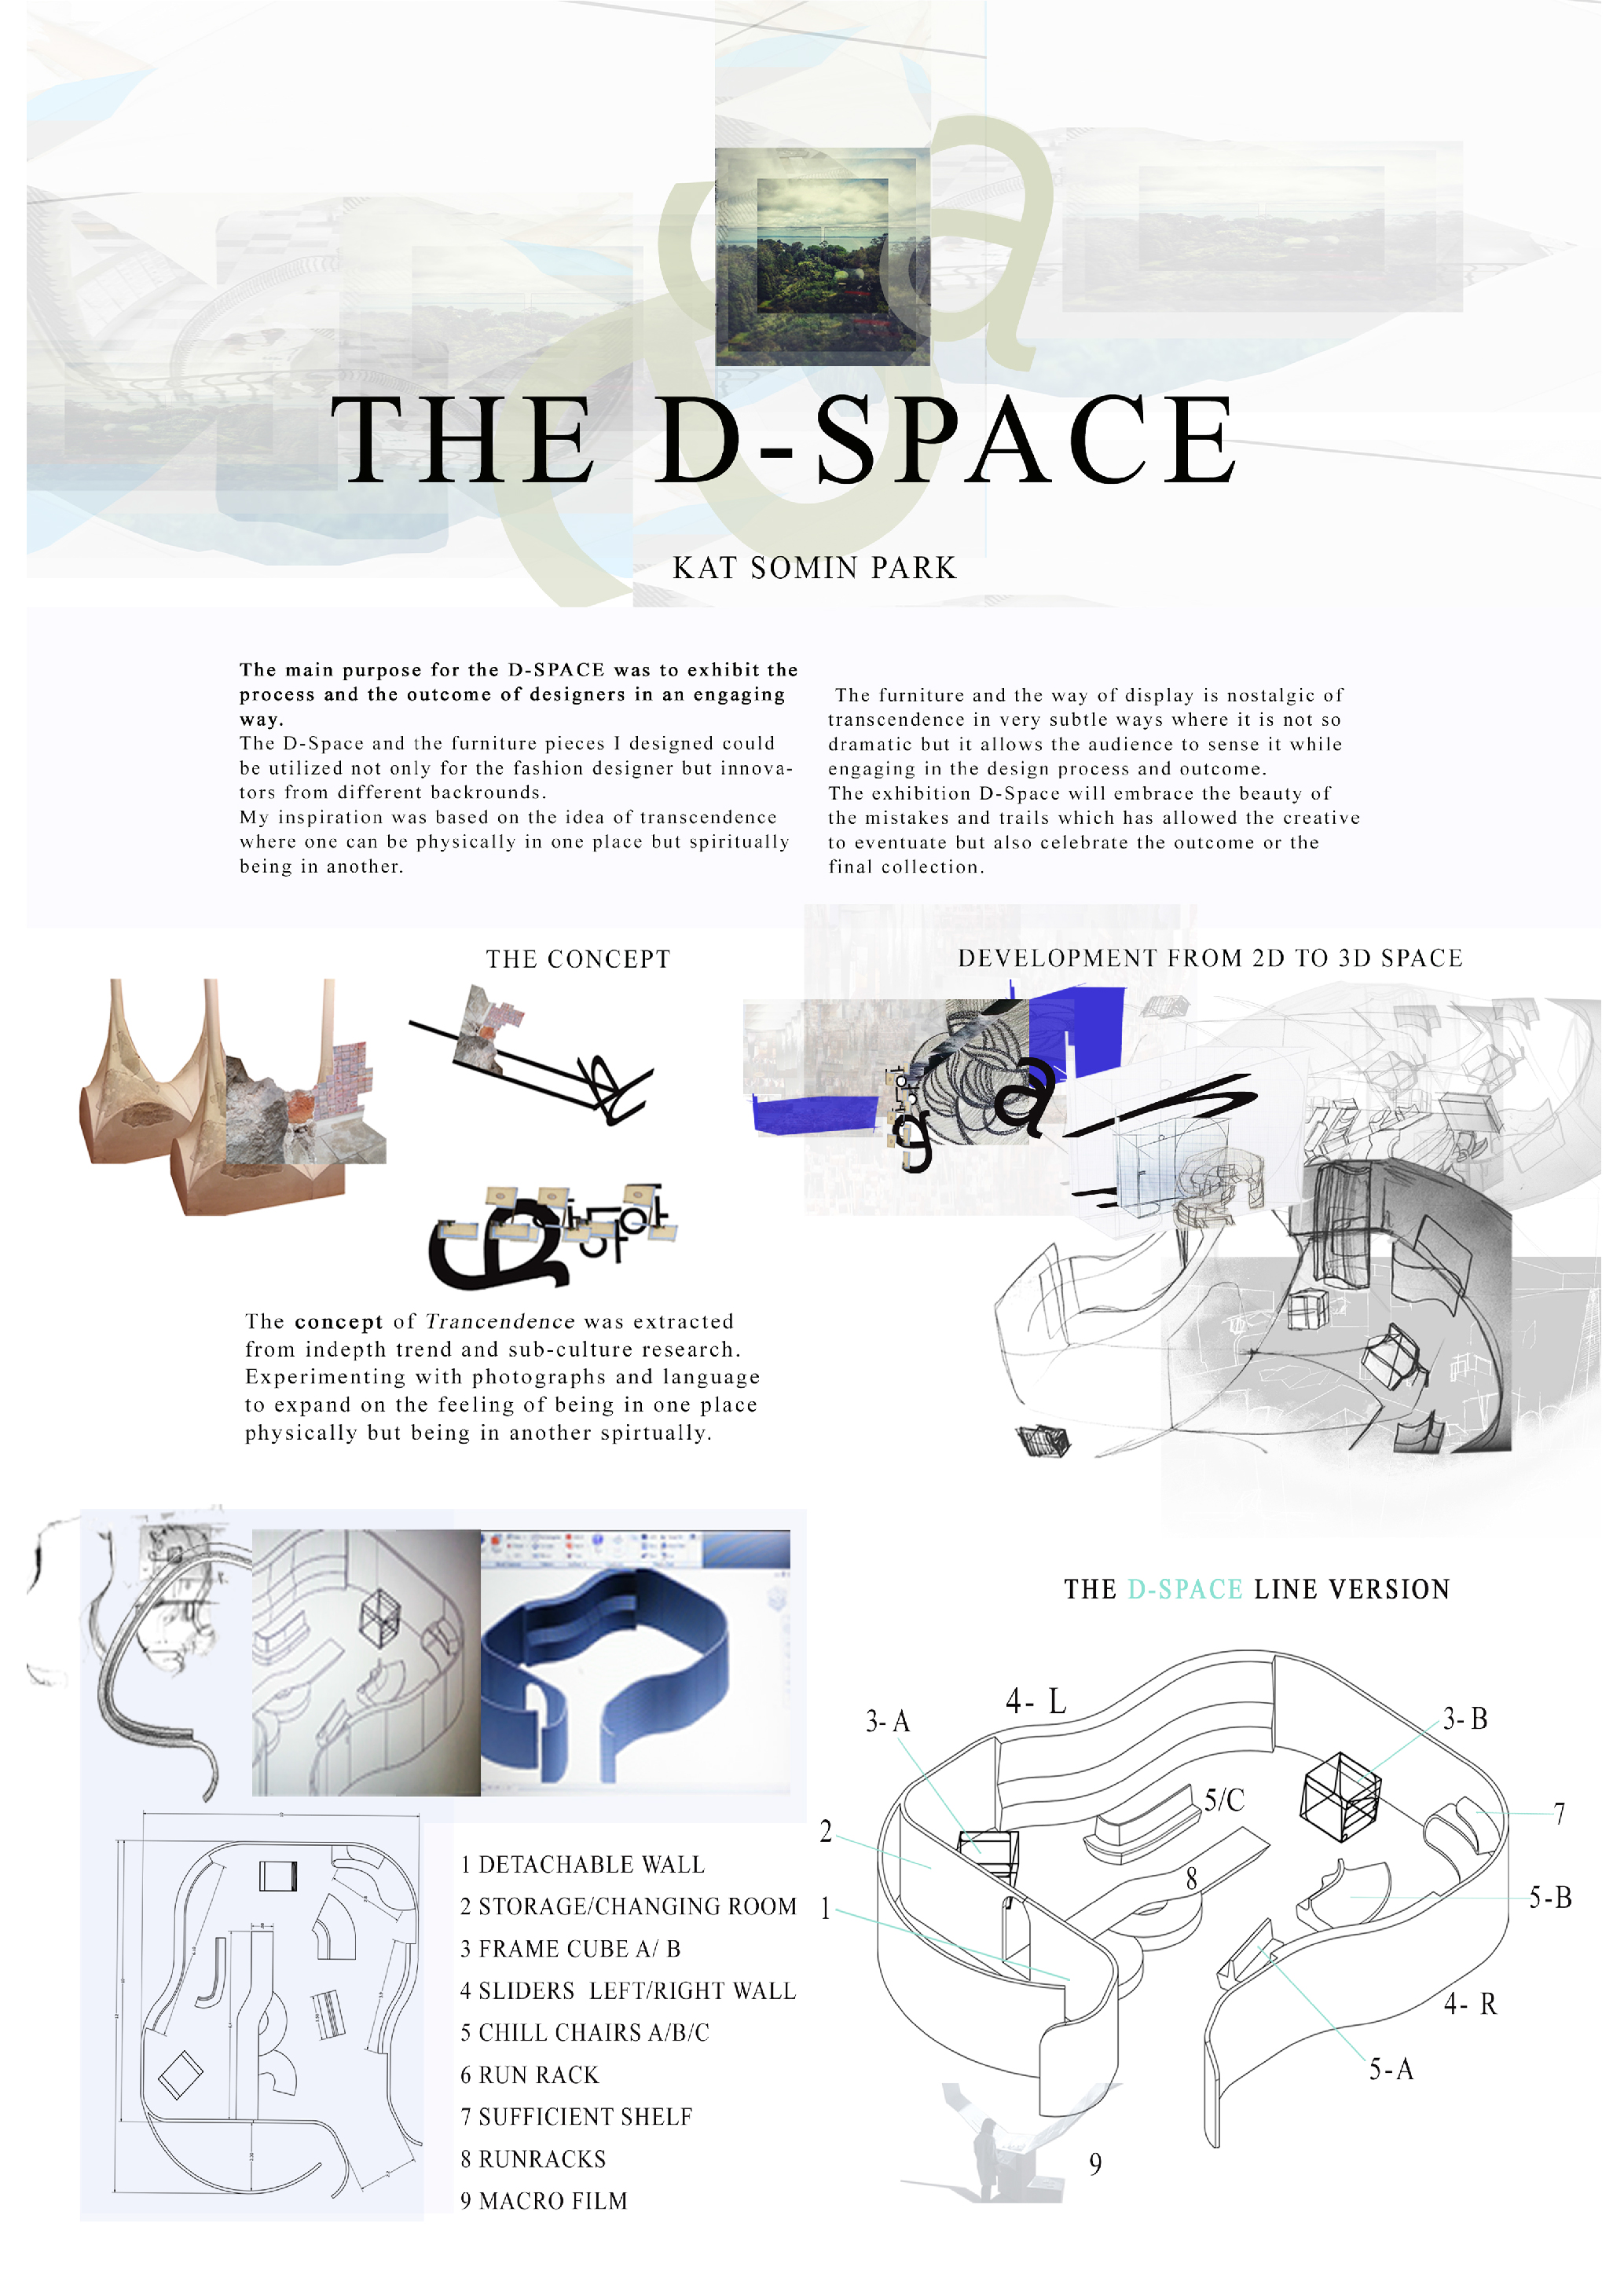 dspace-page1.jpg